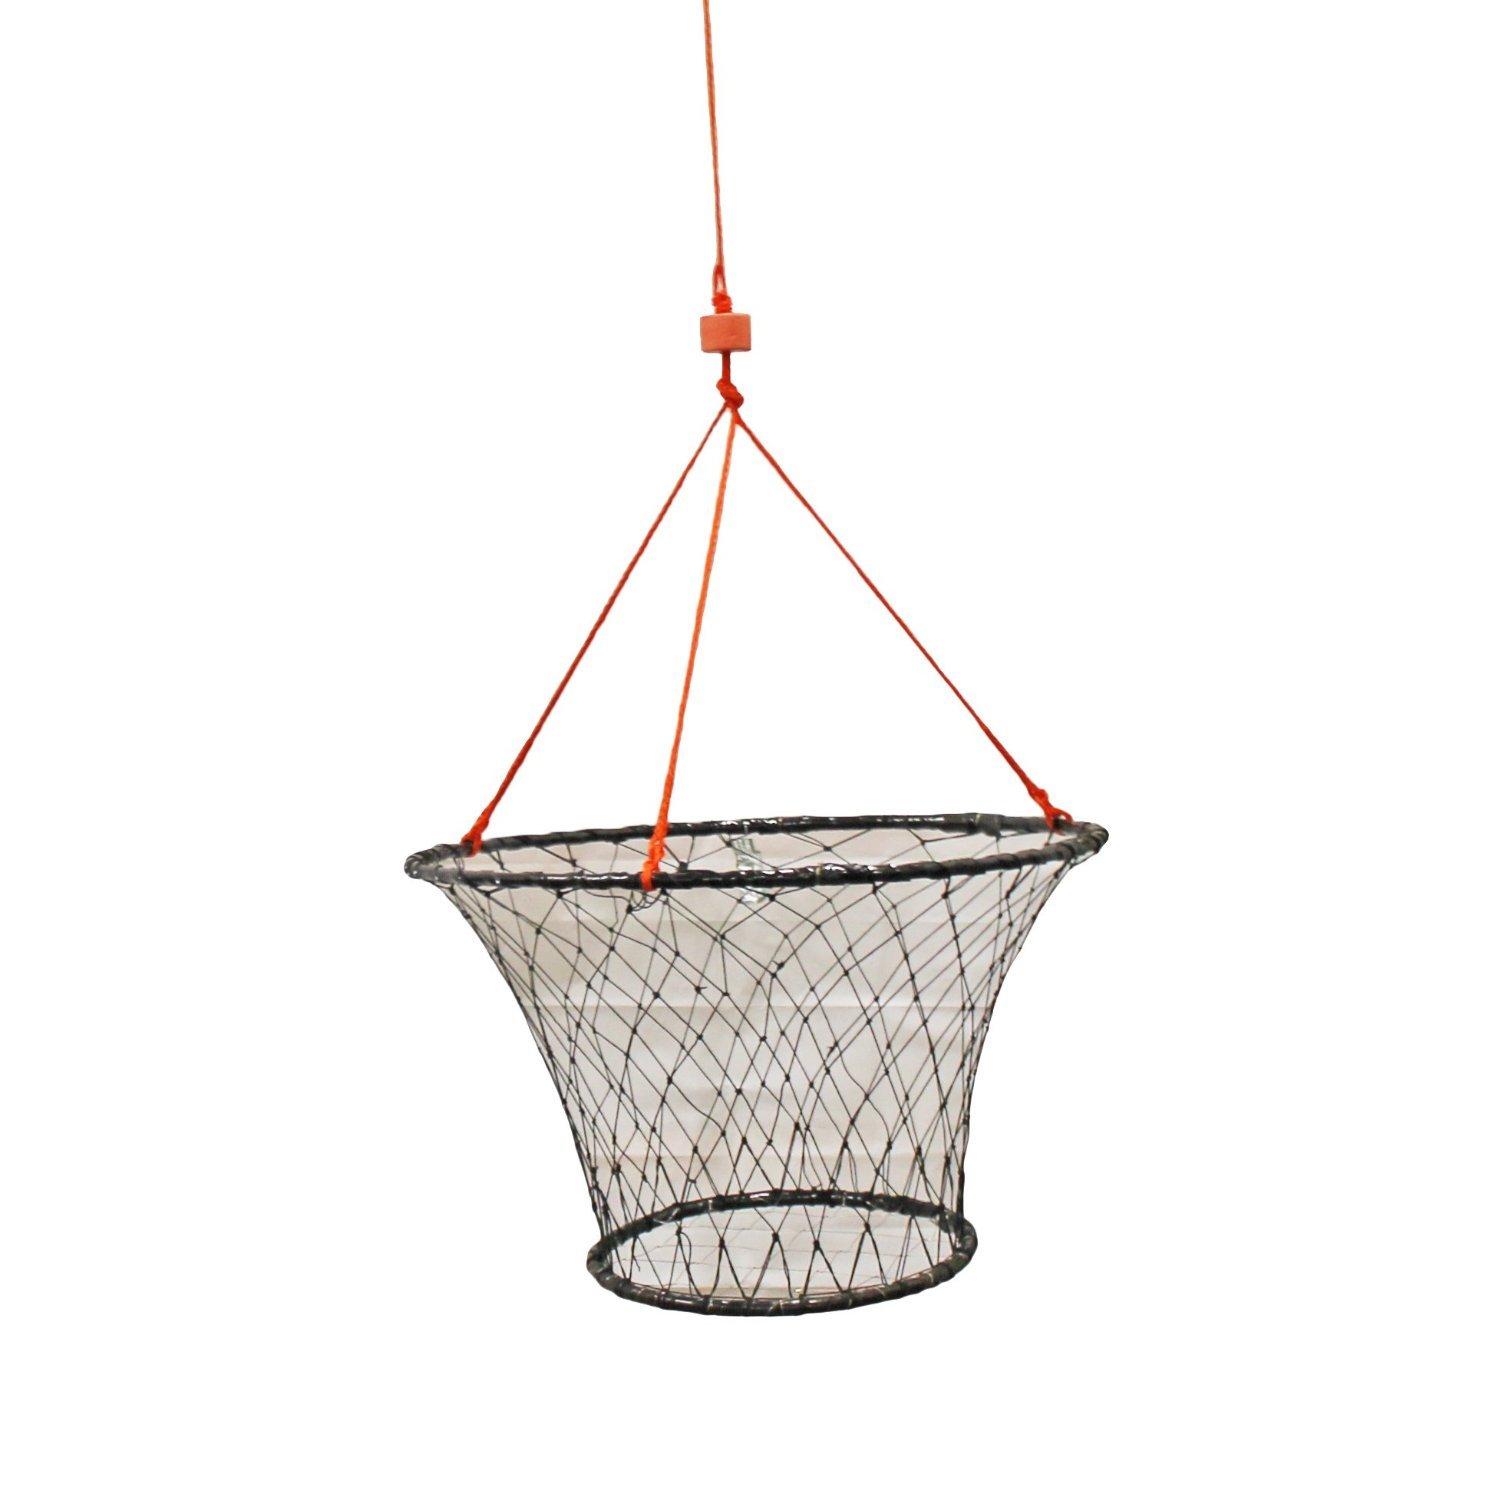 KUFA rubber wrapped steel ring crab trap (Size:ø30'') with 50' rope